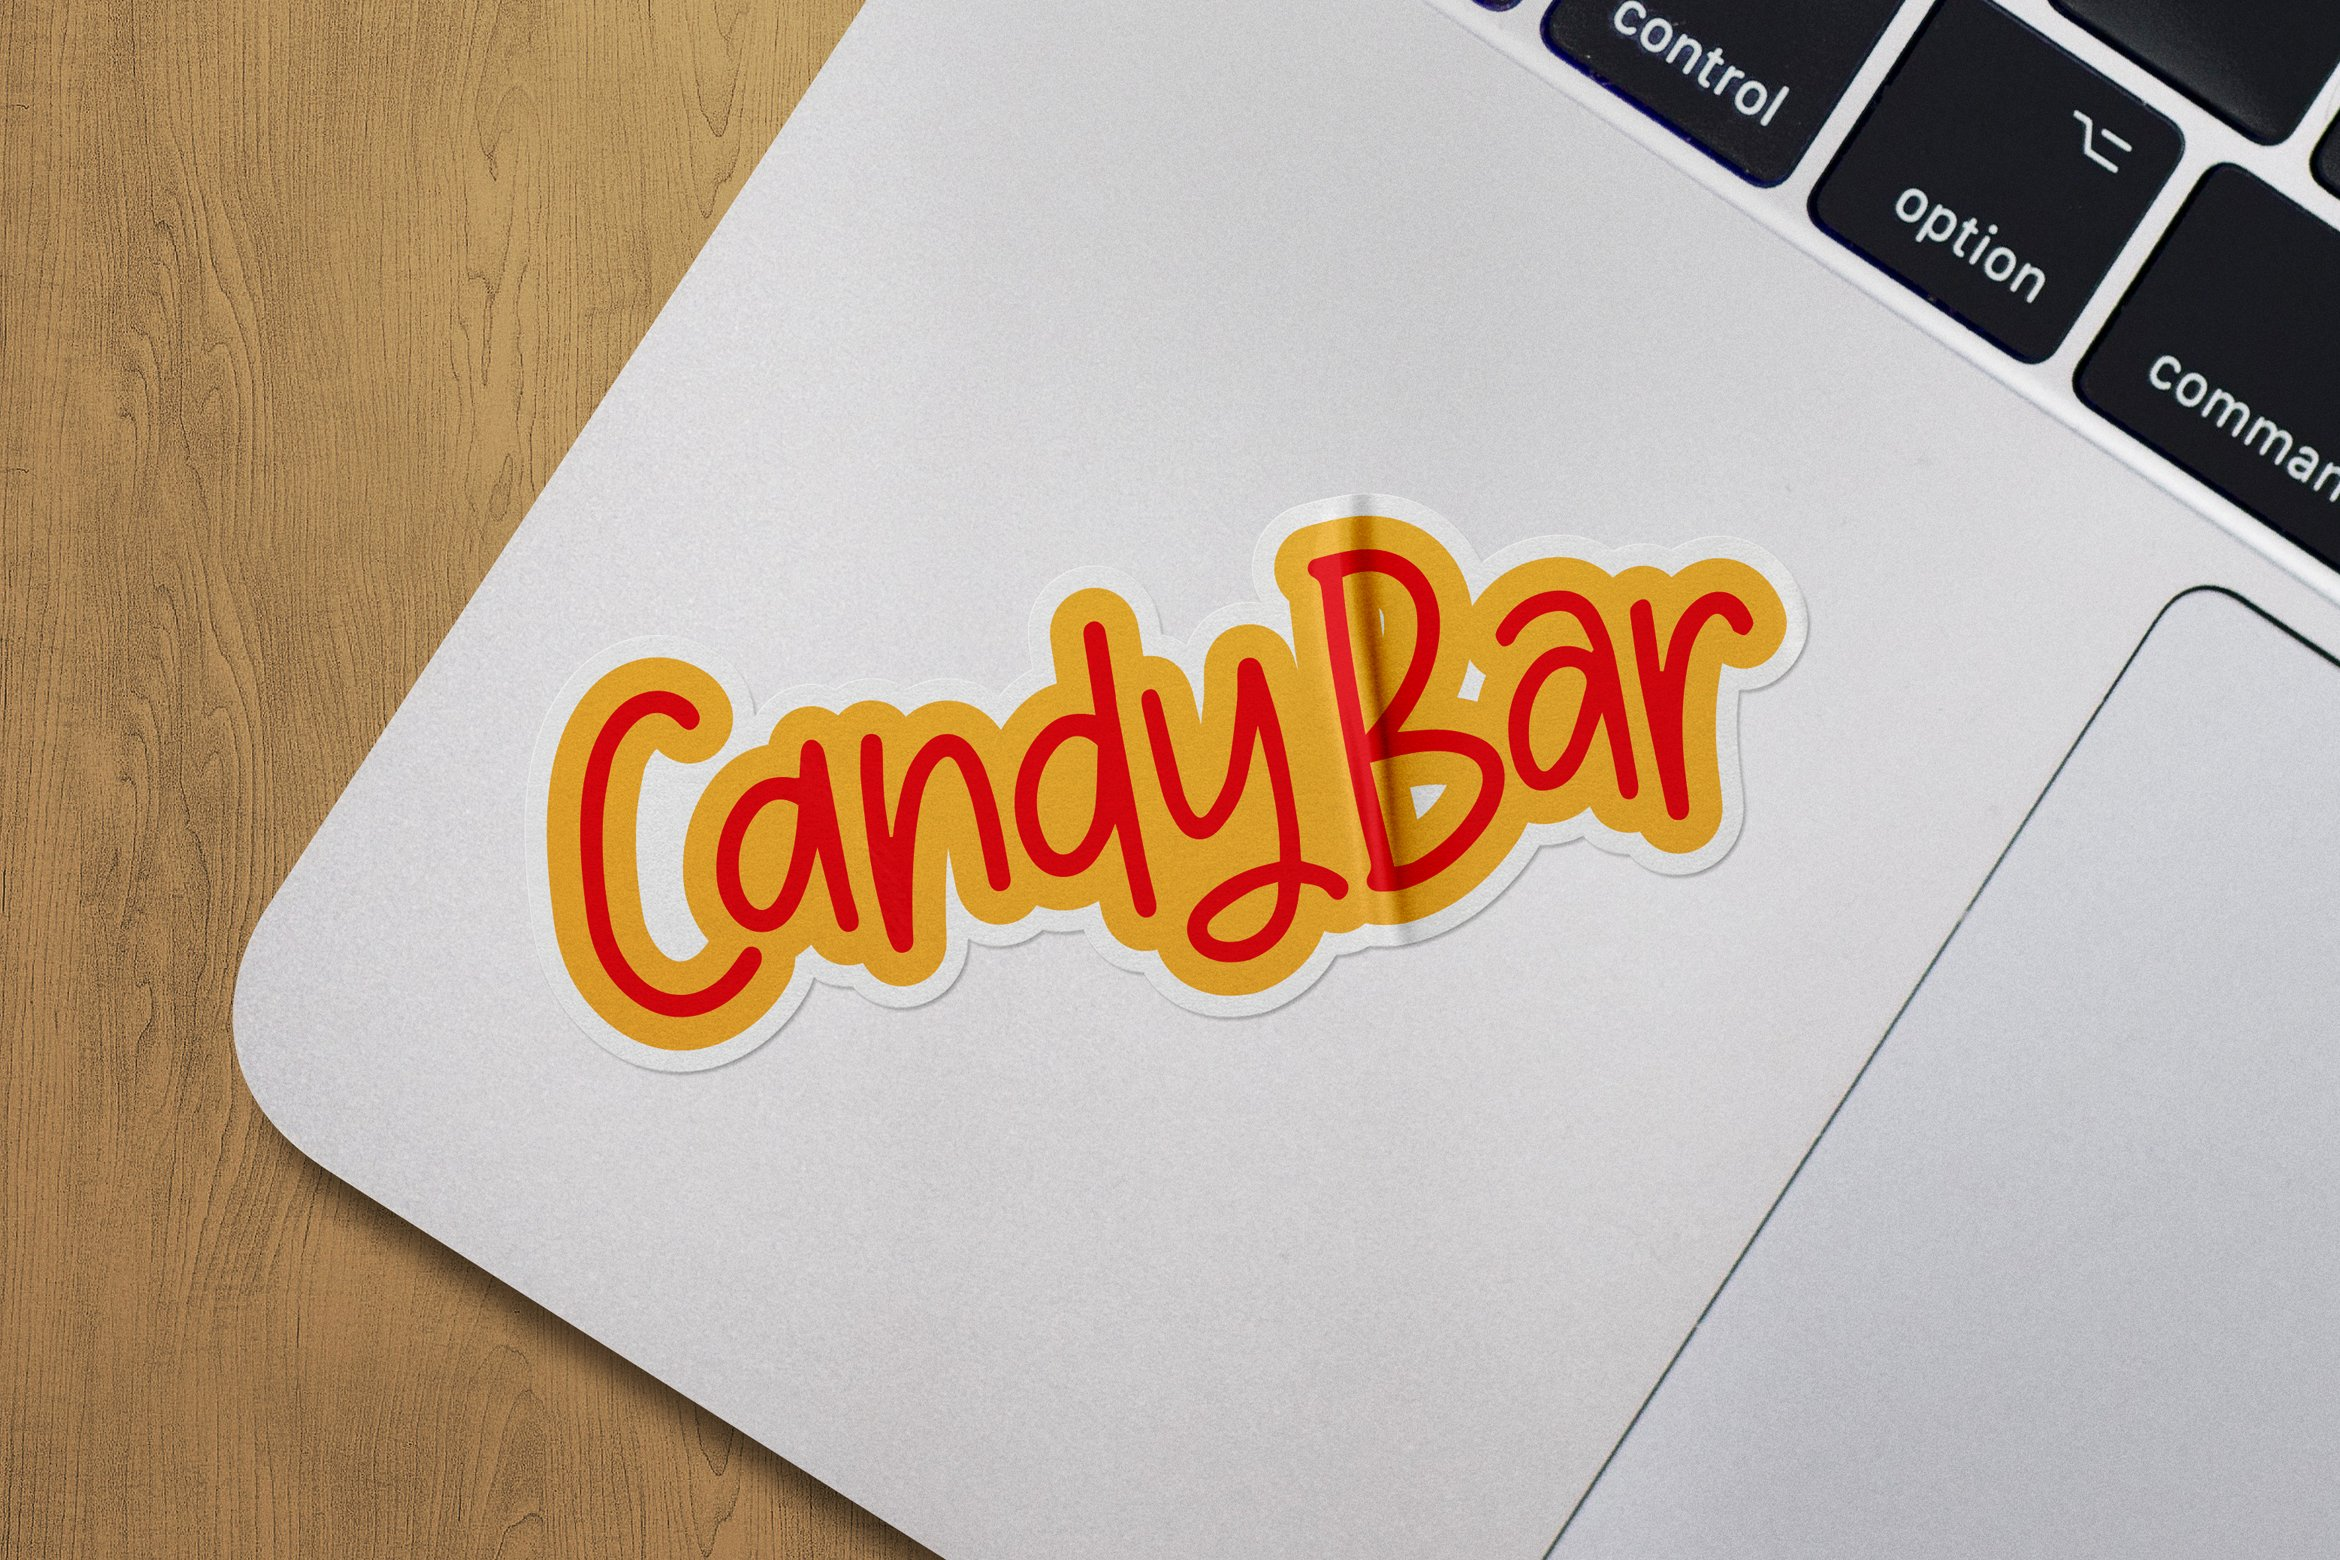 CandyBar - Quirky Font example image 7